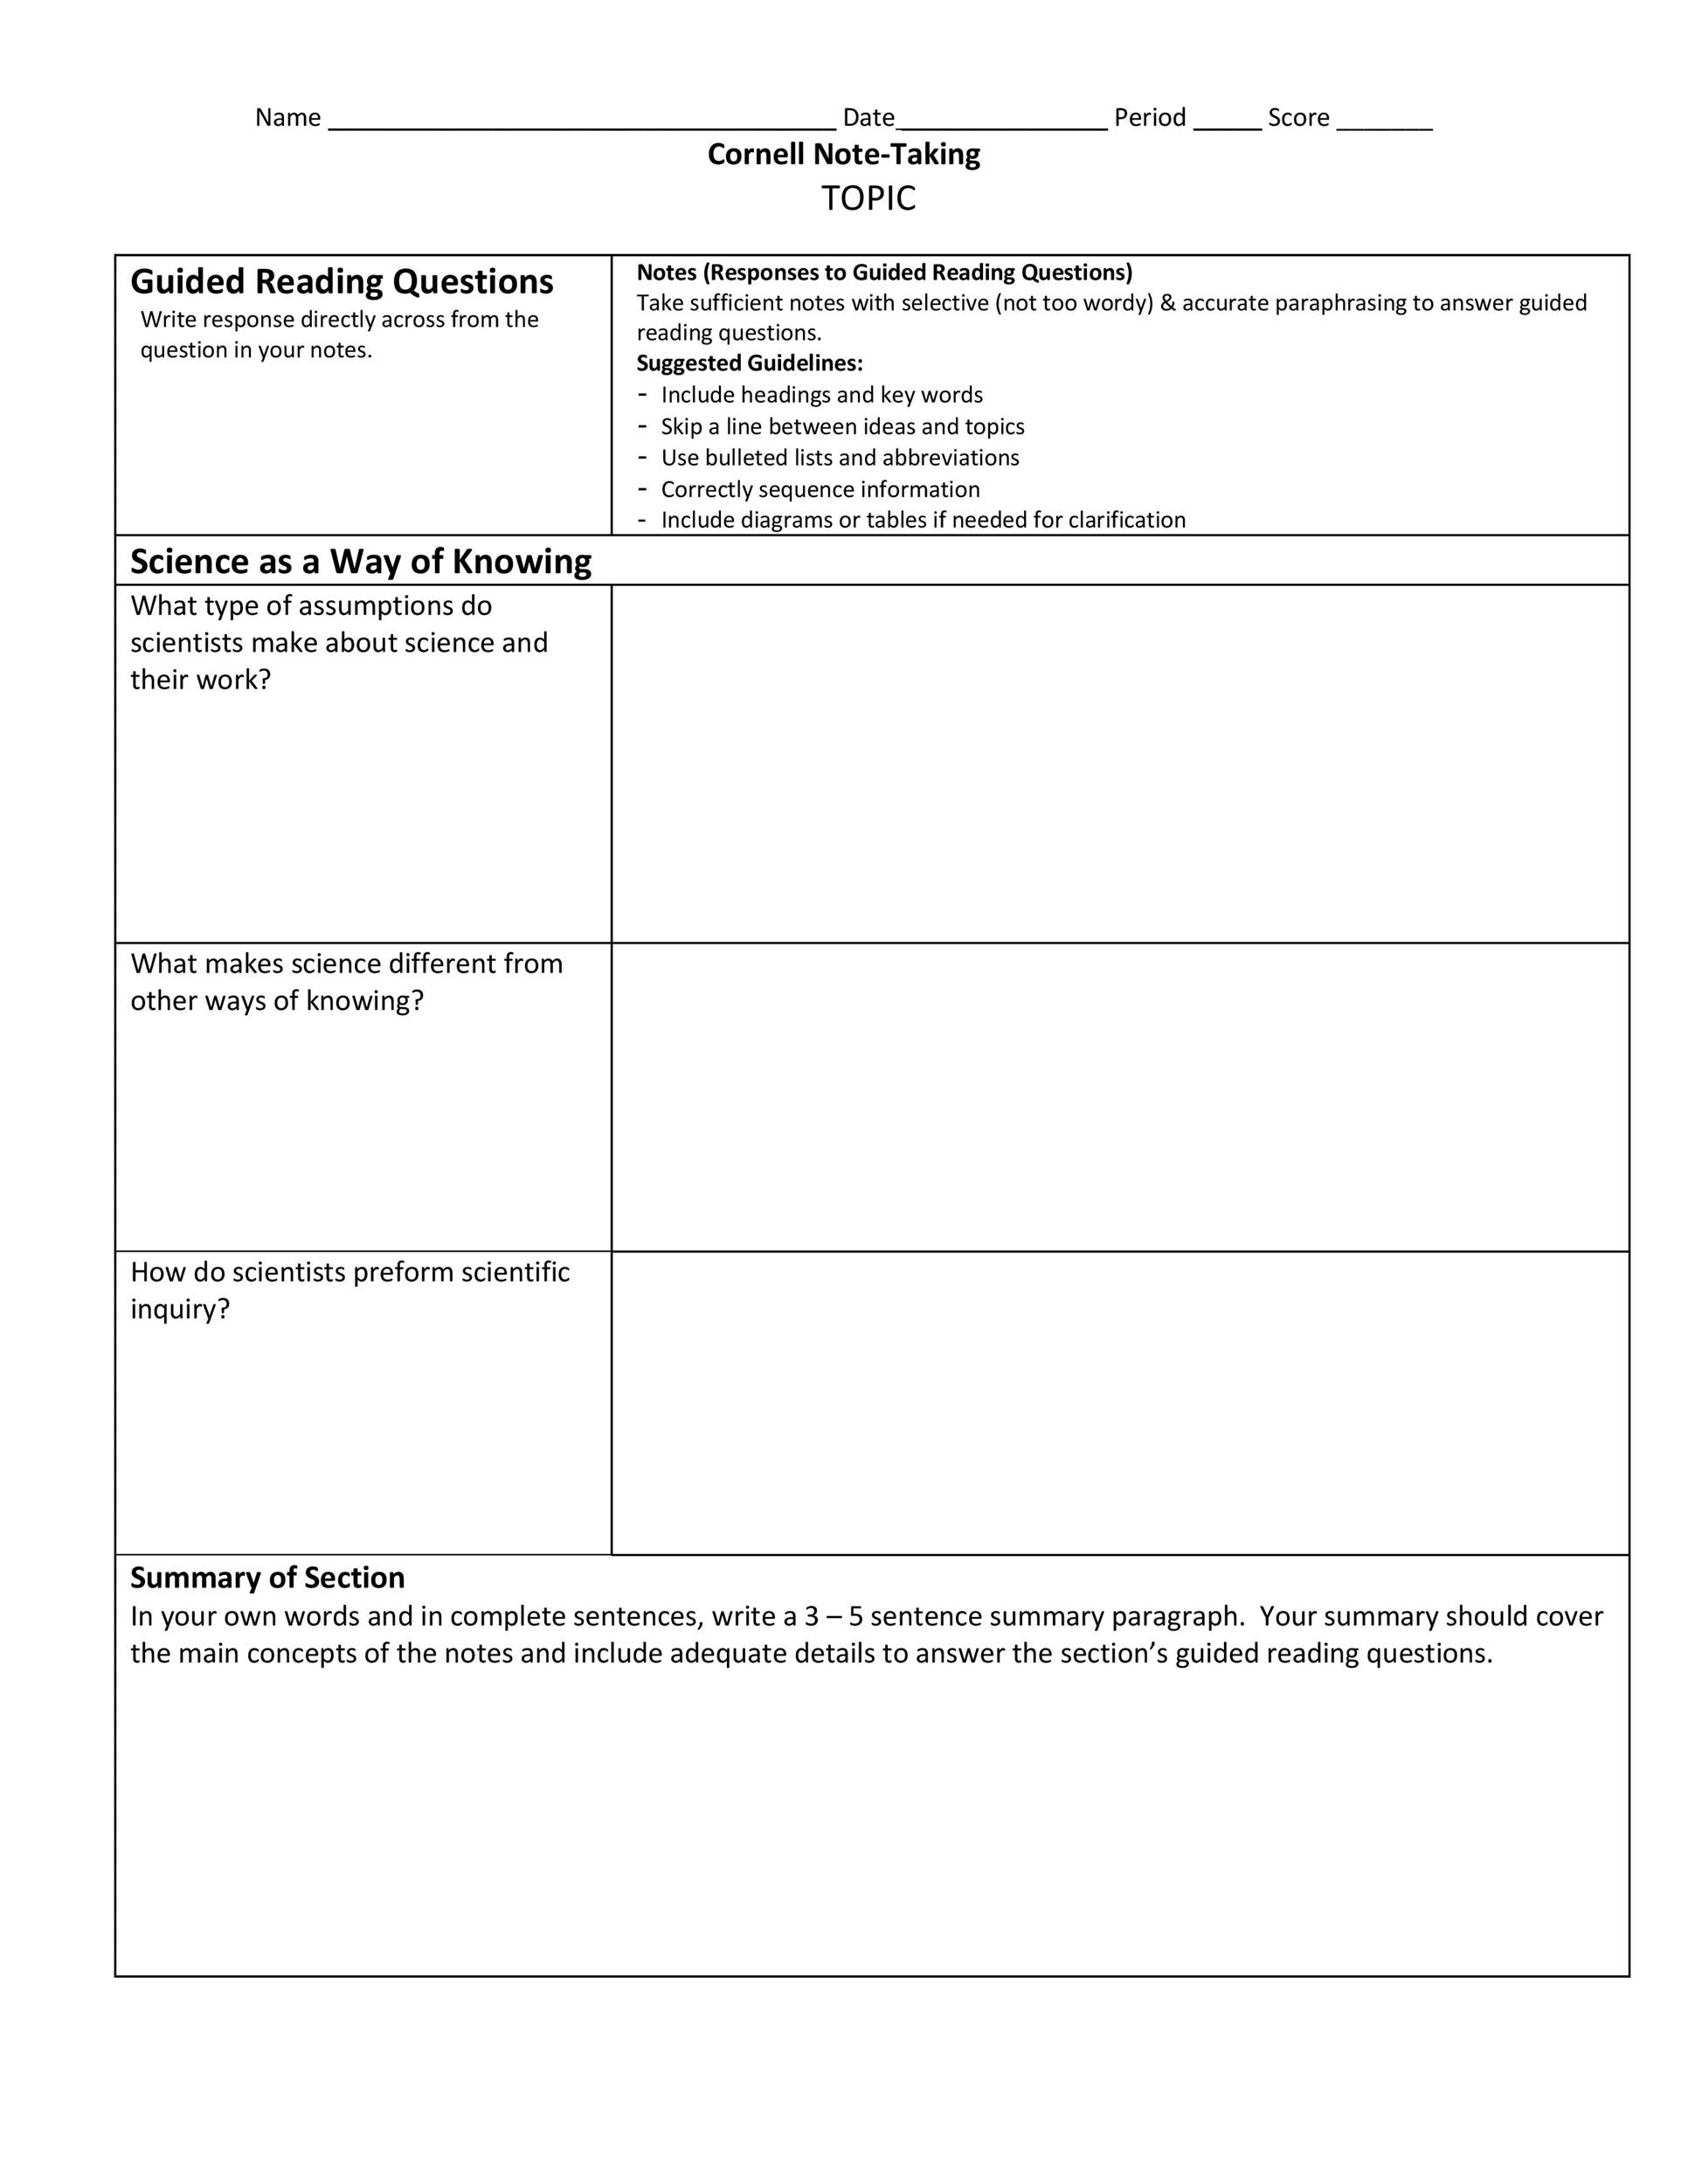 36 Cornell Notes Templates  Examples Word, PDF - Template Lab - Sample Cornell Note